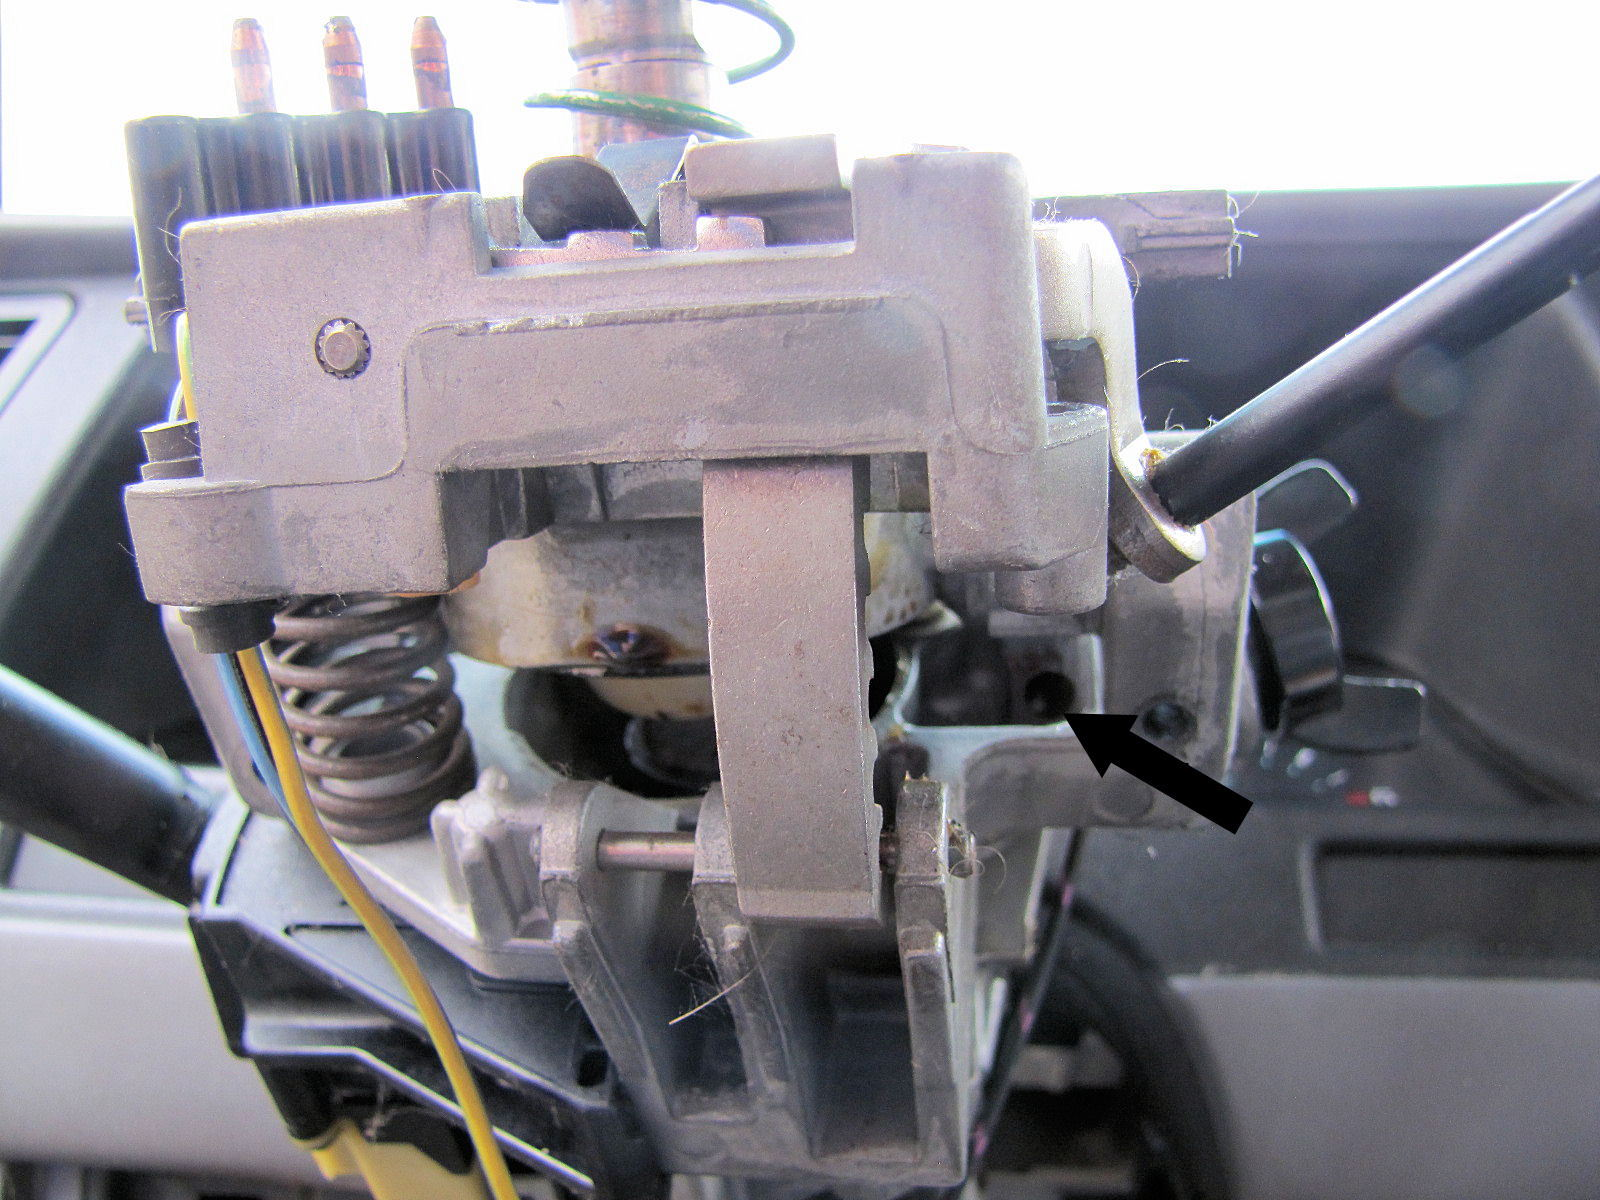 Sergsergsst Gstr in addition Ranger Fuel Pump Relay furthermore G L as well Hqdefault additionally Img A Dfe B Af A E F A A F Acb C Ebae. on 1989 ford ranger ignition switch replace